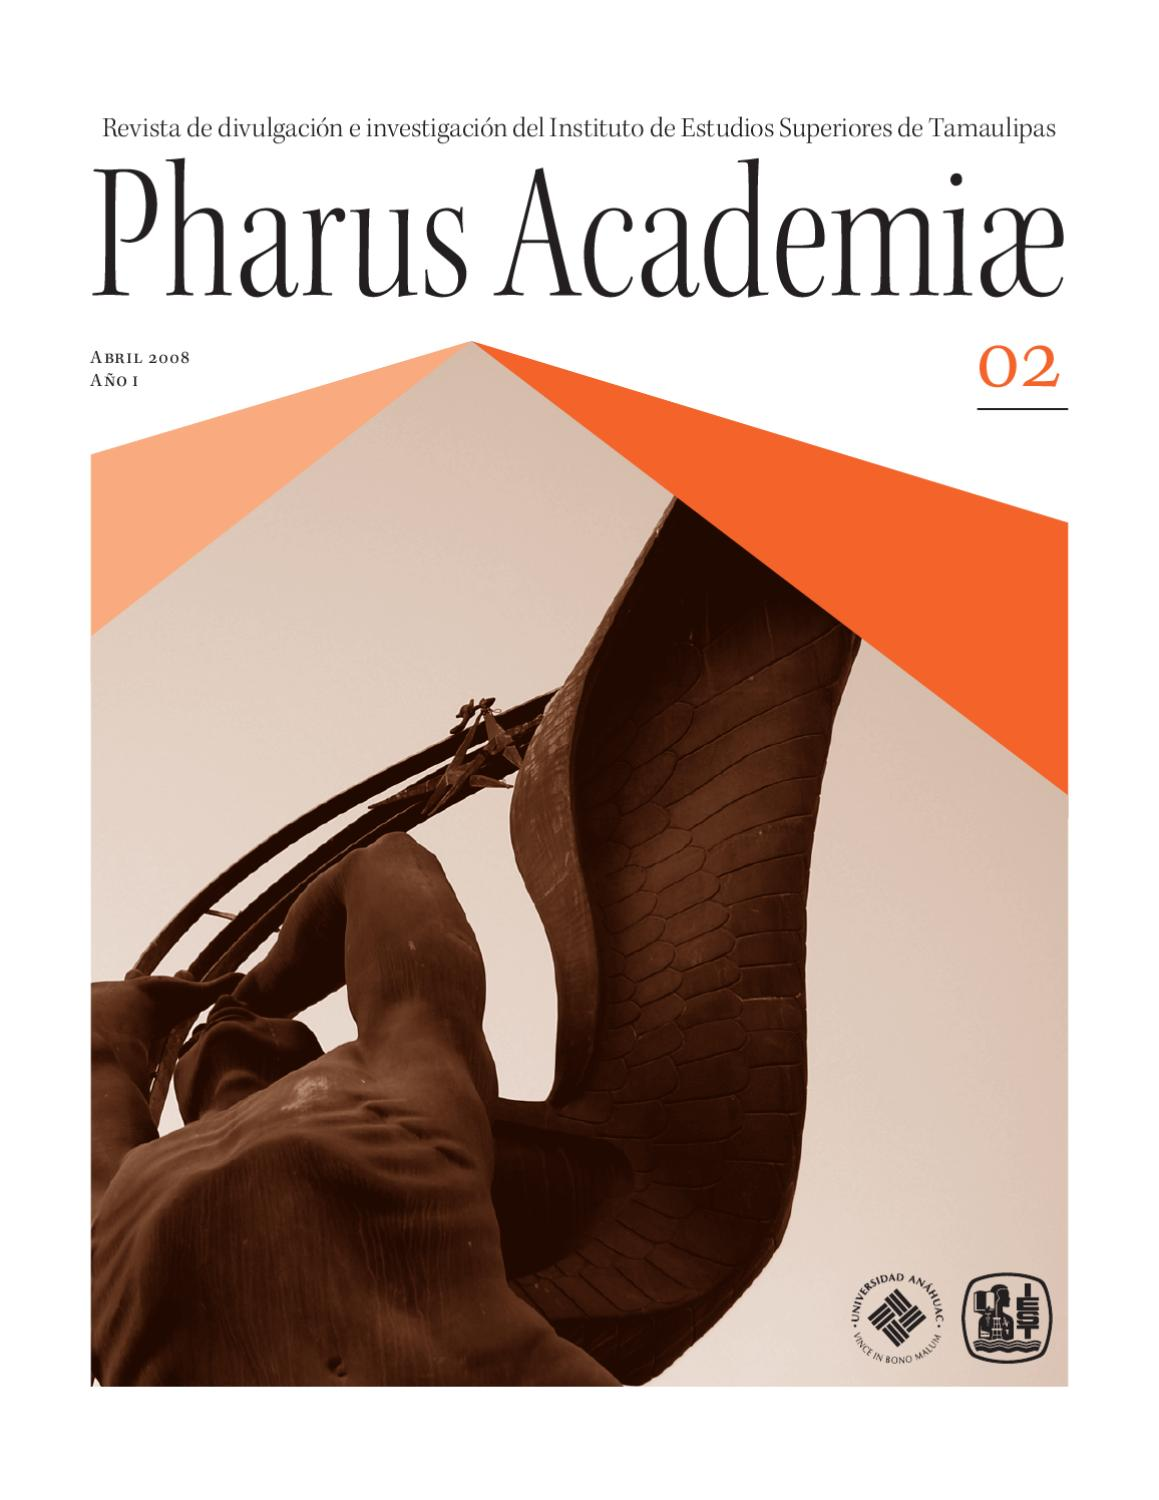 Pharus Academiae 2 by Red de Universidades Anáhuac - issuu